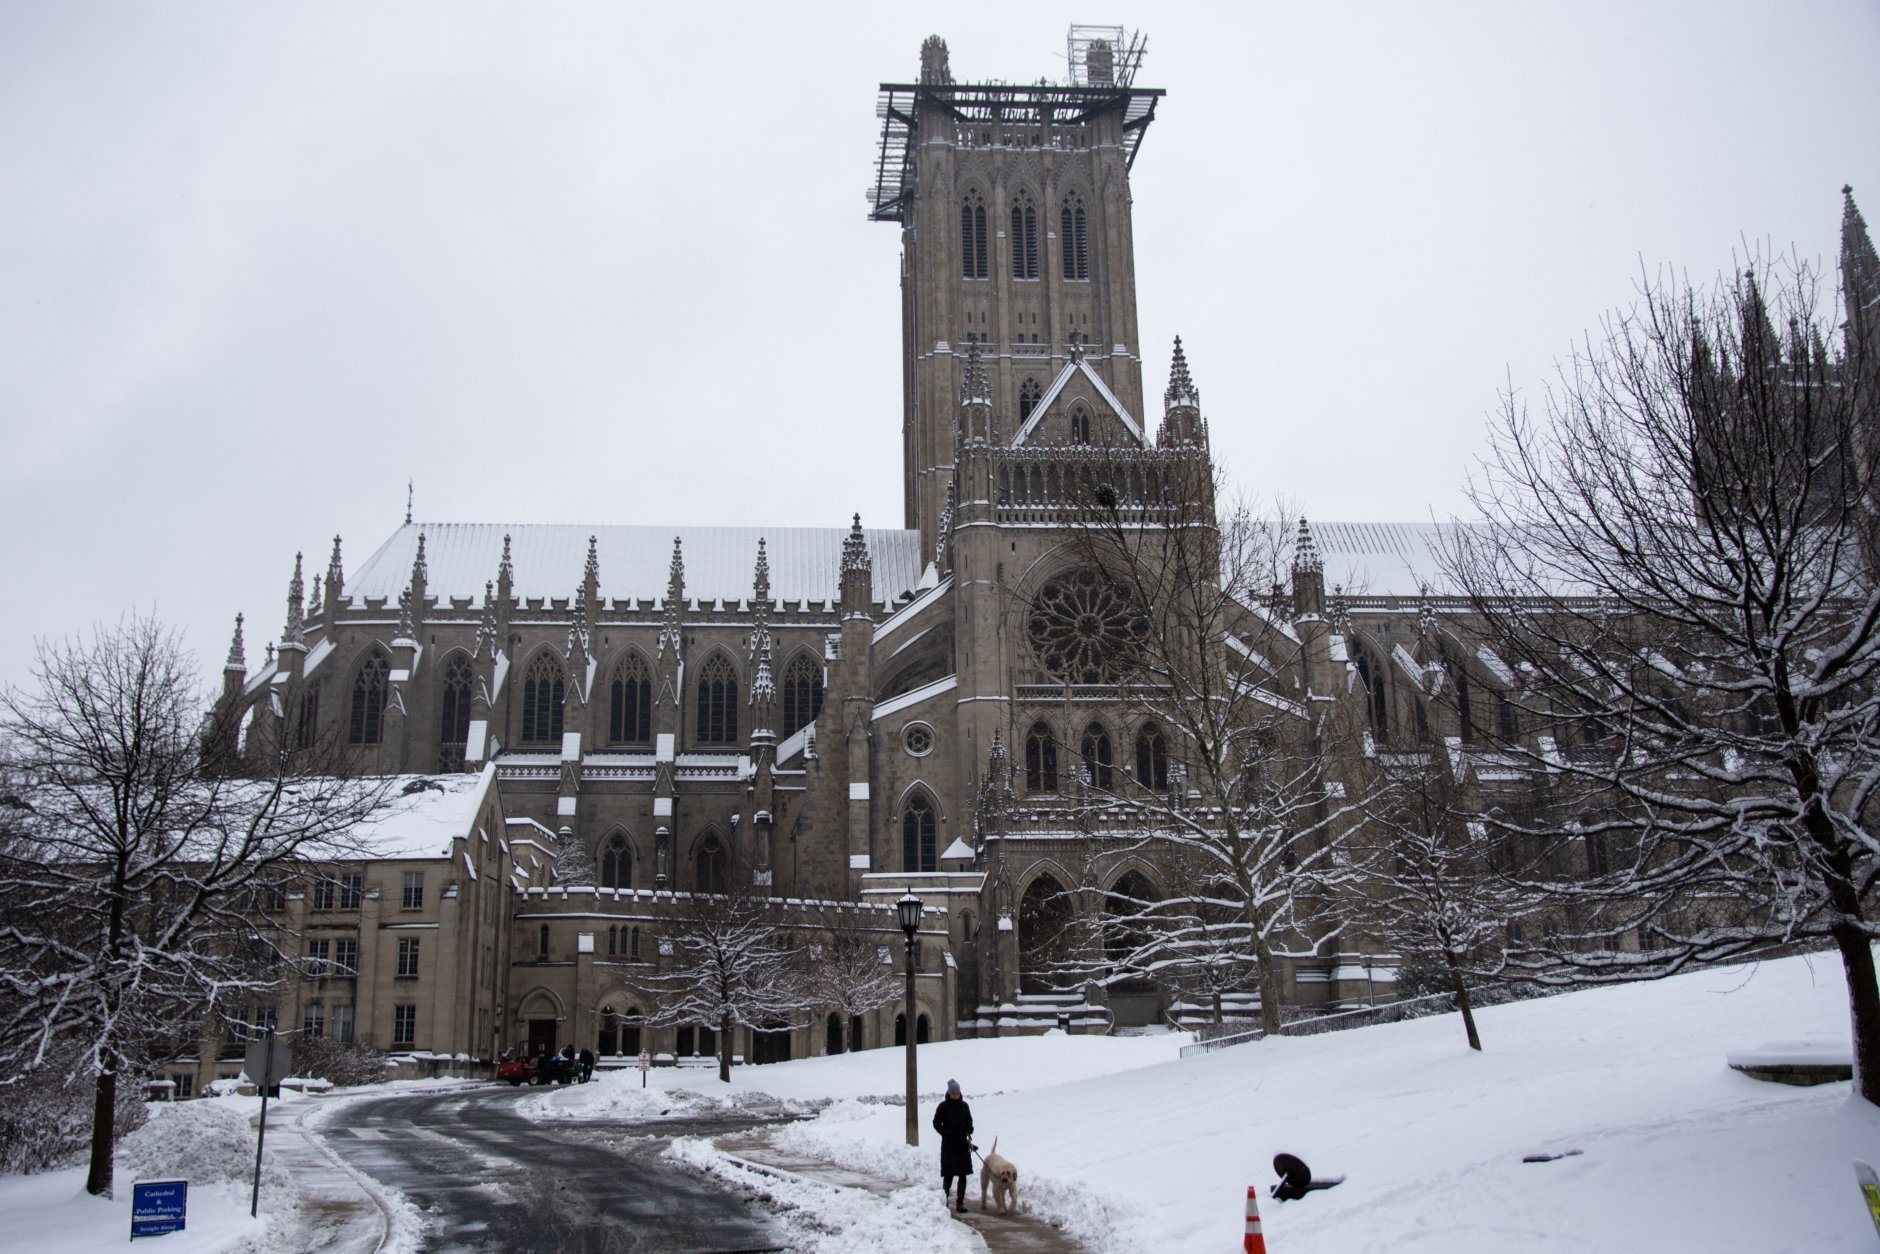 """<p><strong>Tour the National Cathedral</strong></p> <p>The <a href=""""https://cathedral.org/"""" target=""""_blank"""" rel=""""noopener"""">National Cathedral</a> is a great destination for those interested in learning more about art and history (the Cathedral offers several different <a href=""""https://cathedral.org/what-to-do/tours/"""" target=""""_blank"""" rel=""""noopener"""">tours</a>, including one that ends with a traditional English tea). It&#8217;s also perfect for those who like to wander (the gardens on the grounds are simply gorgeous). Pack your appetite: <a href=""""https://www.opencitycathedraldc.com/"""" target=""""_blank"""" rel=""""noopener"""">Open City</a> serves coffee, sandwiches and sweets in the Cathedral&#8217;s cafe. Or check out one of the many restaurants across the street, including <a href=""""http://www.cactuscantina.com/"""" target=""""_blank"""" rel=""""noopener"""">Cactus Cantina</a>, <a href=""""http://2amyspizza.com/"""" target=""""_blank"""" rel=""""noopener"""">2Amys</a>, <a href=""""https://www.barcelonawinebar.com/location/cathedral-heights/"""" target=""""_blank"""" rel=""""noopener"""">Barcelona</a> and <a href=""""https://www.thegrilledoystercompany.com/"""" target=""""_blank"""" rel=""""noopener"""">The Grilled Oyster Company</a>.</p>"""